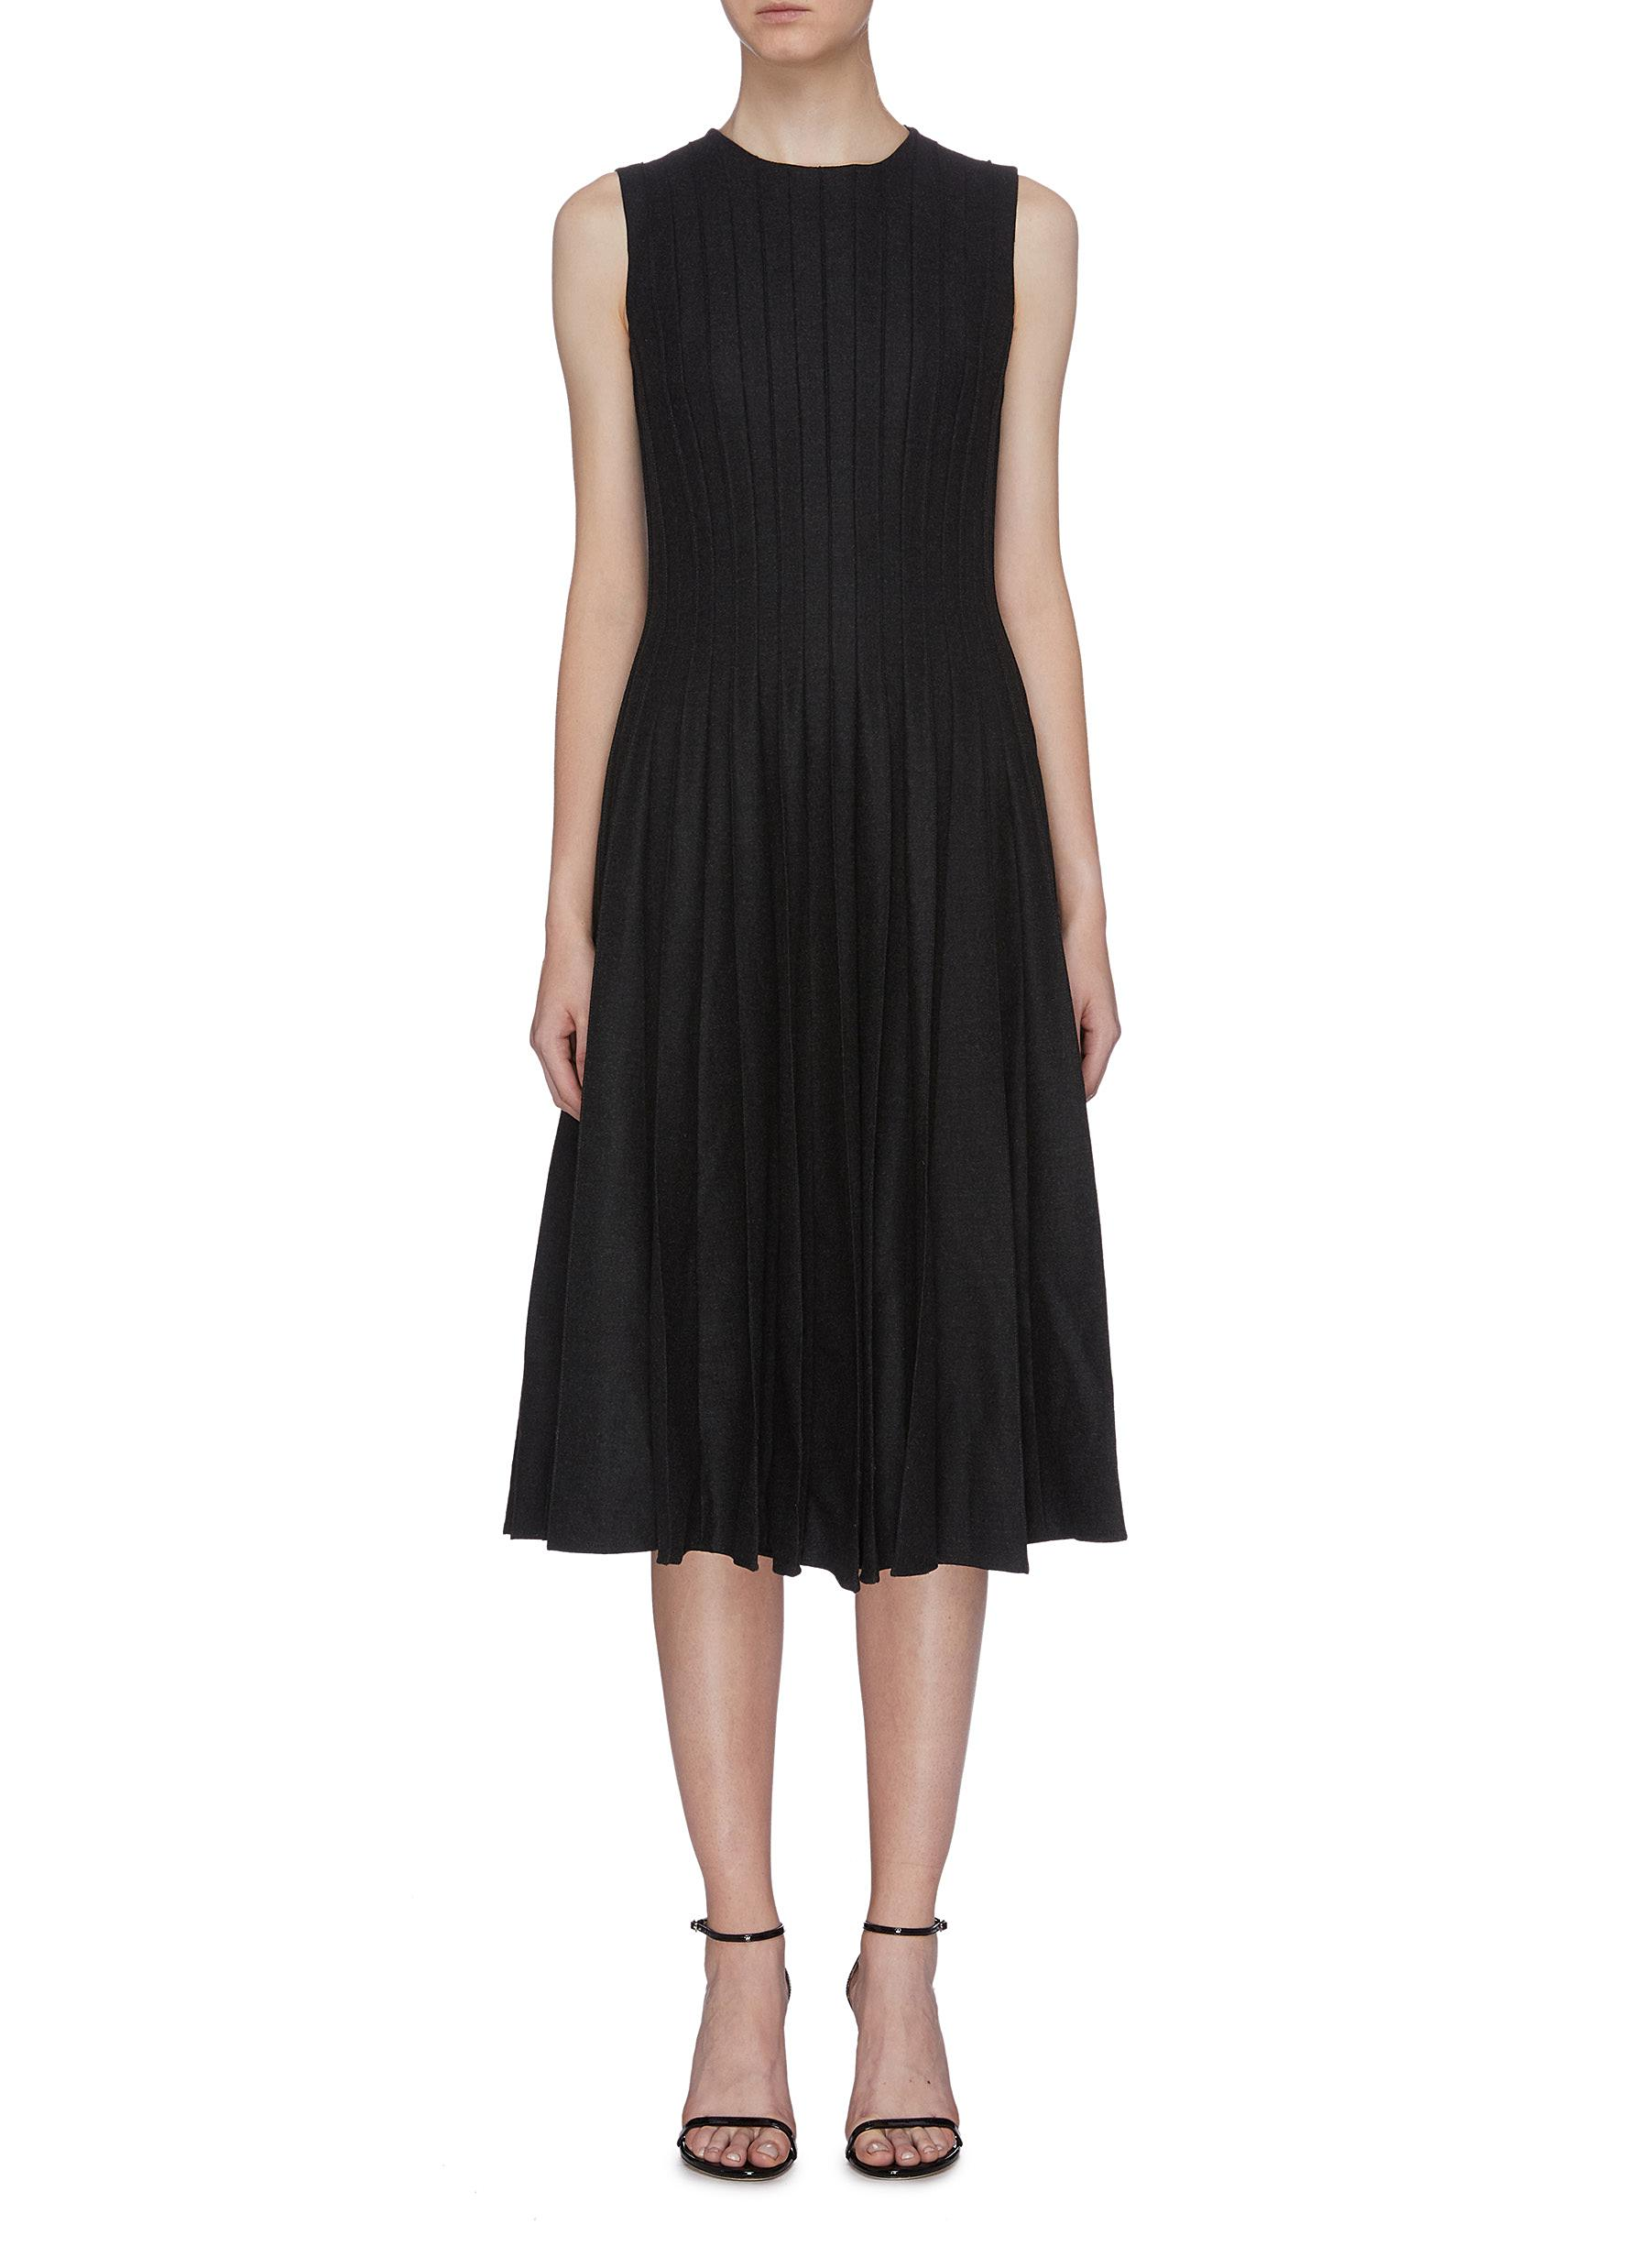 Pleated wool sleeveless dress by Oscar De La Renta